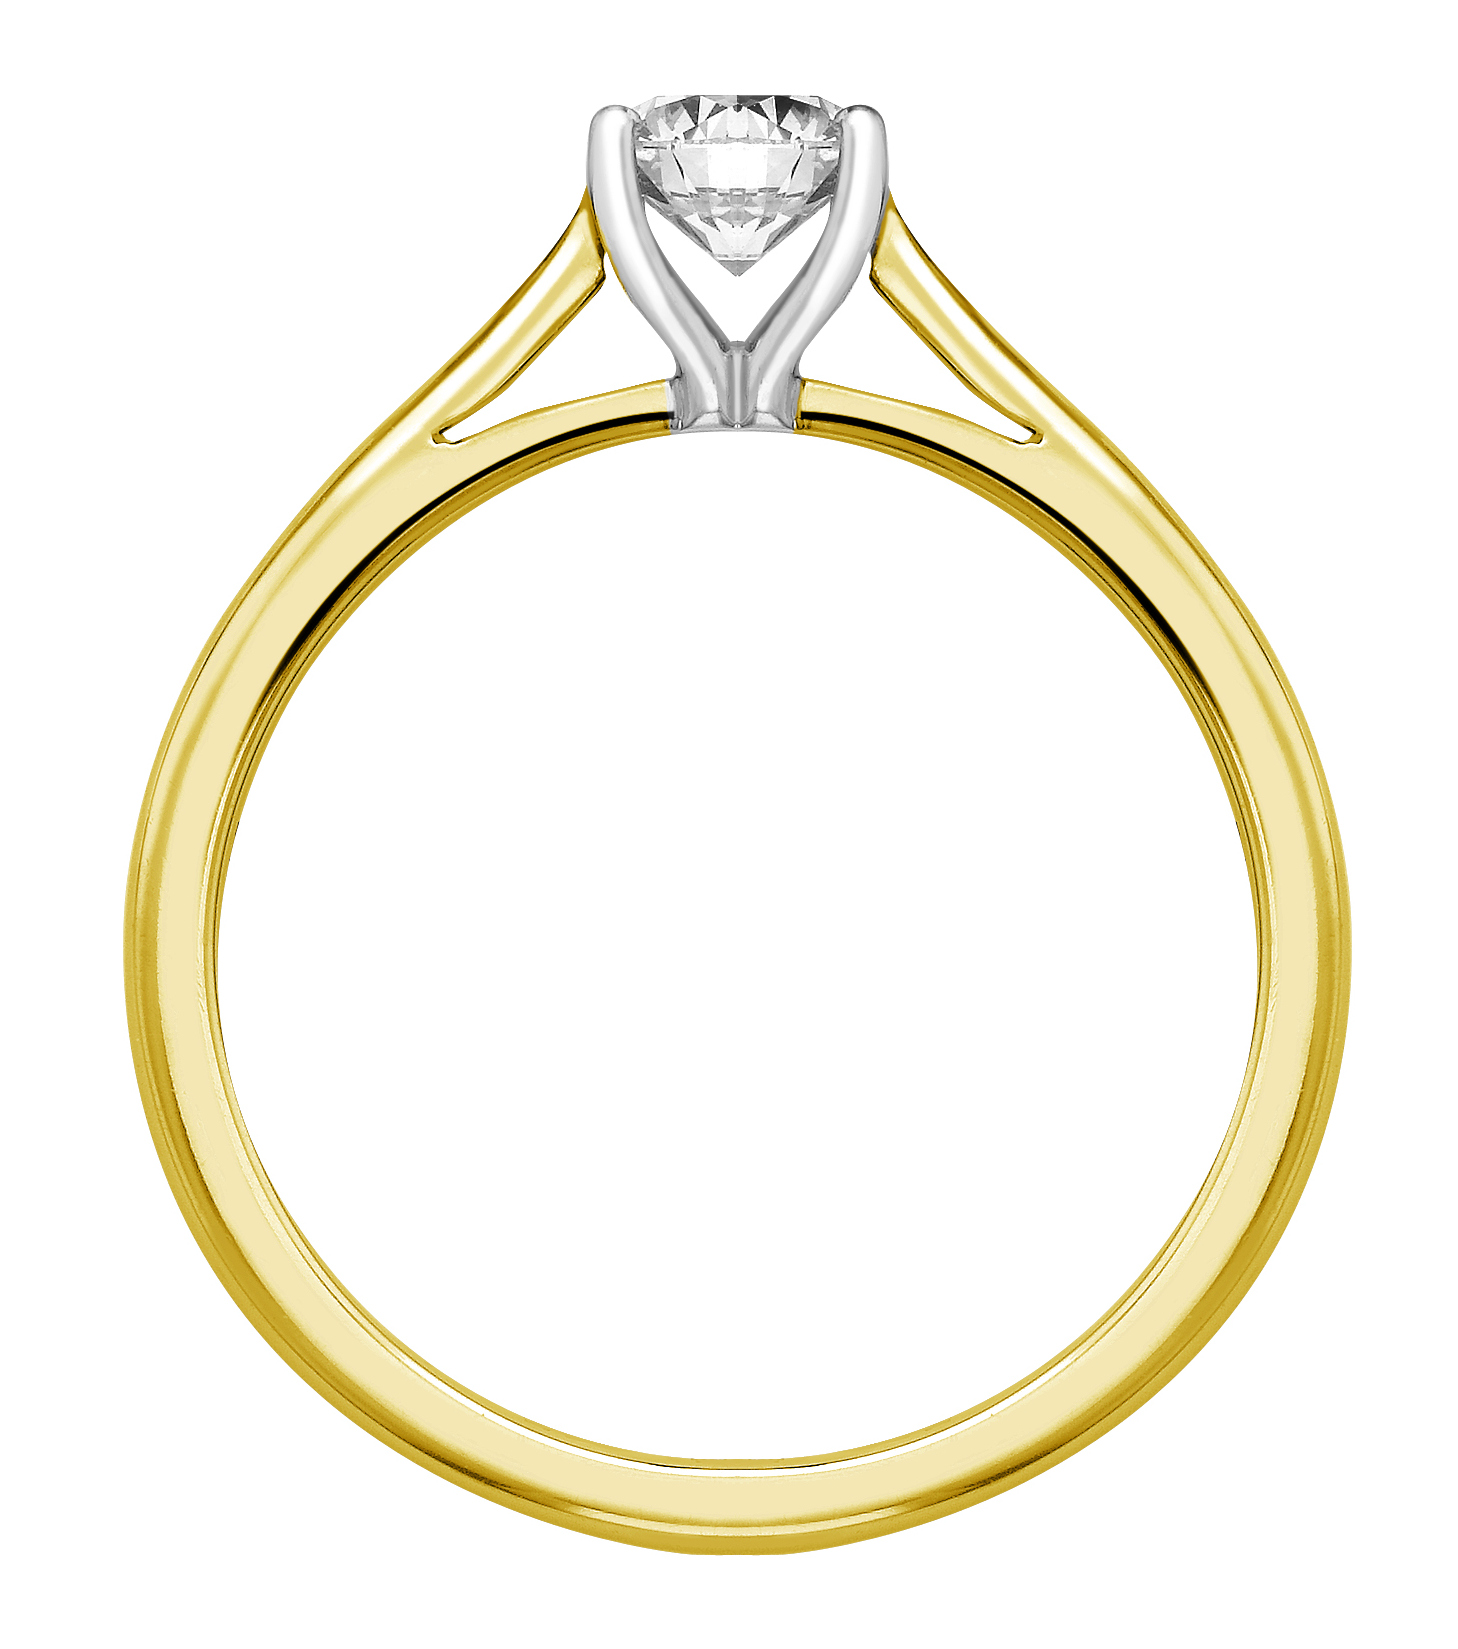 Round Four Claw Yellow Gold Engagement Ring GRC783YG Image 2